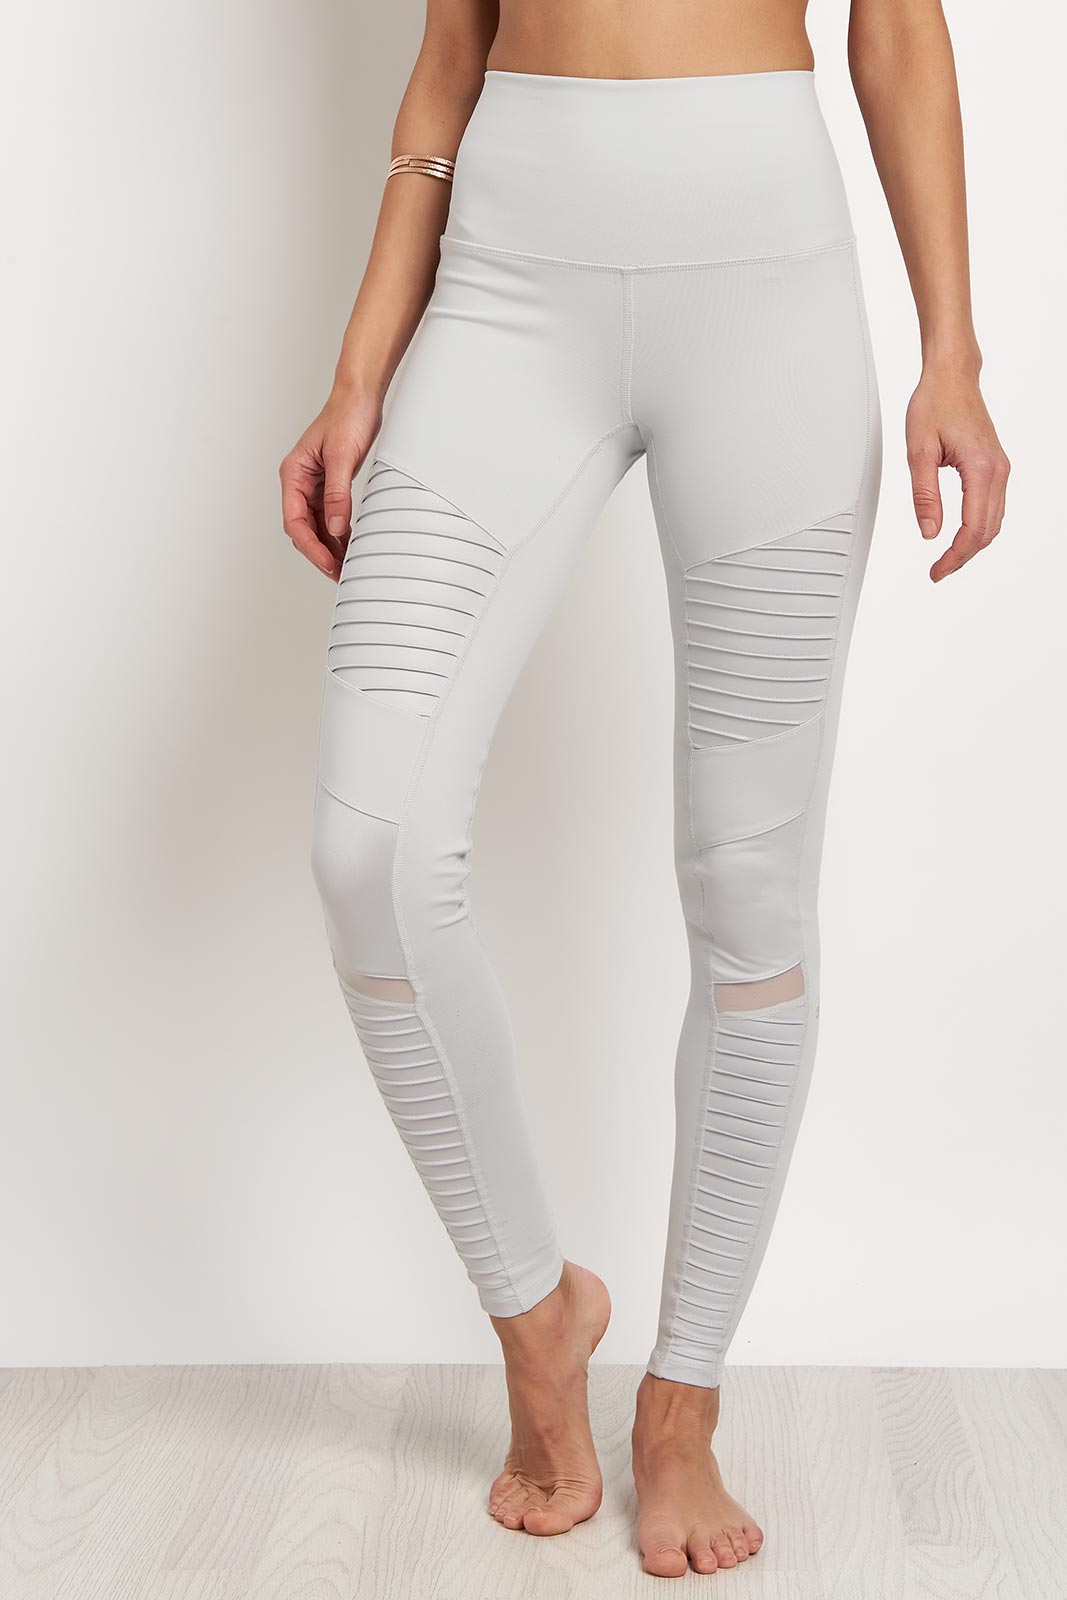 Alo Yoga High Waist Moto Legging -Dove Grey image 1 - The Sports Edit